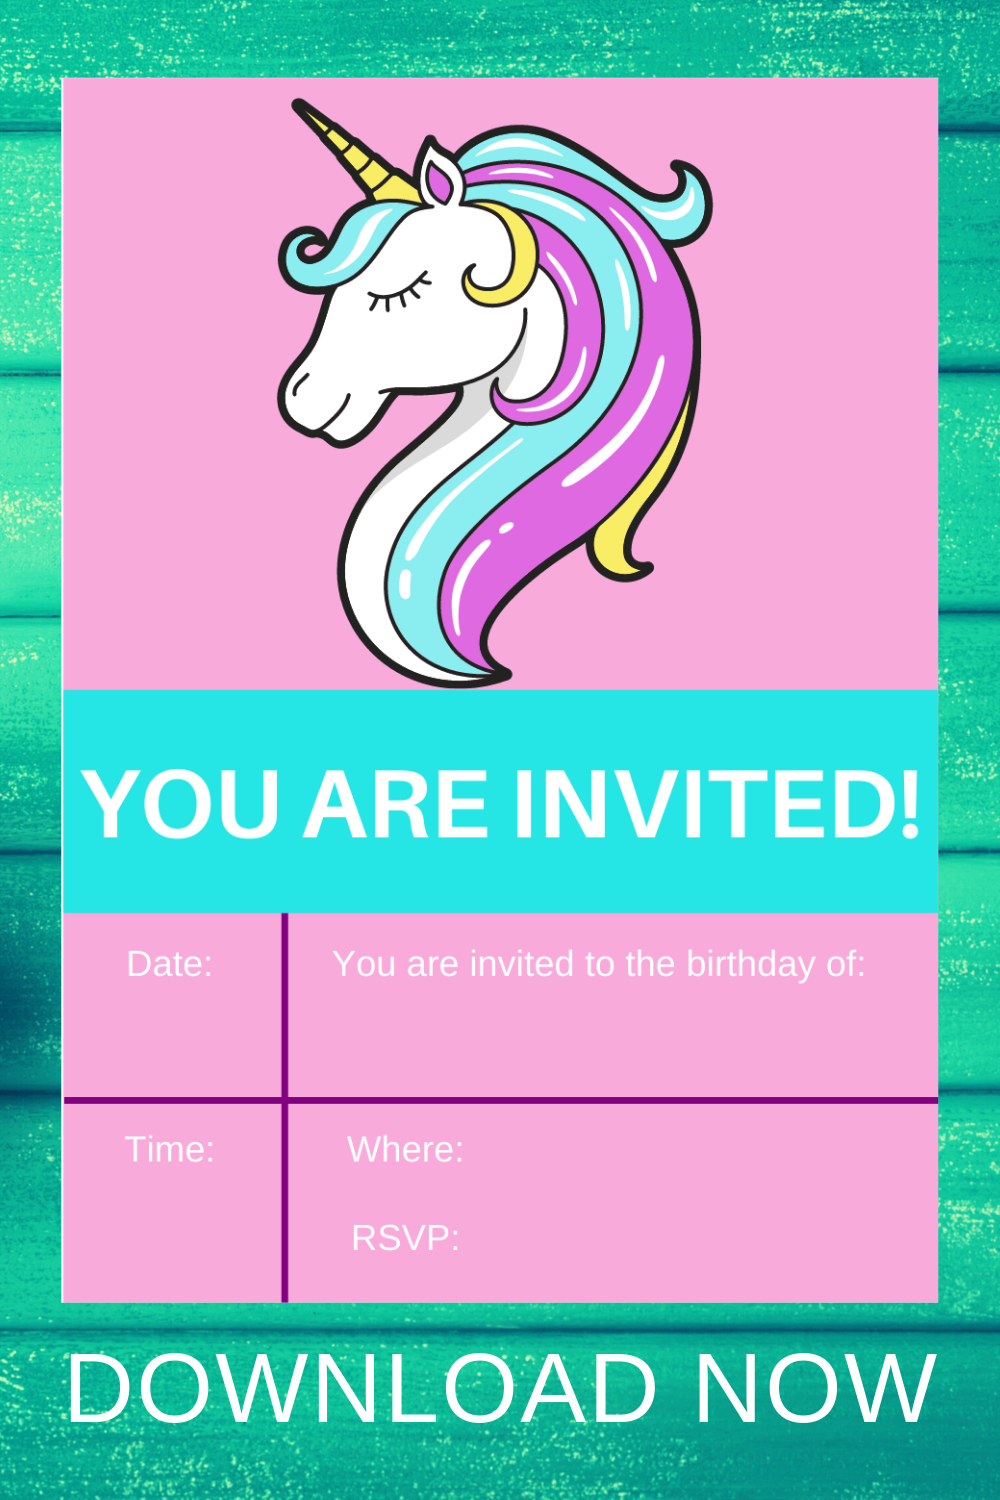 unicorn birthday party invitation for a toddler girl